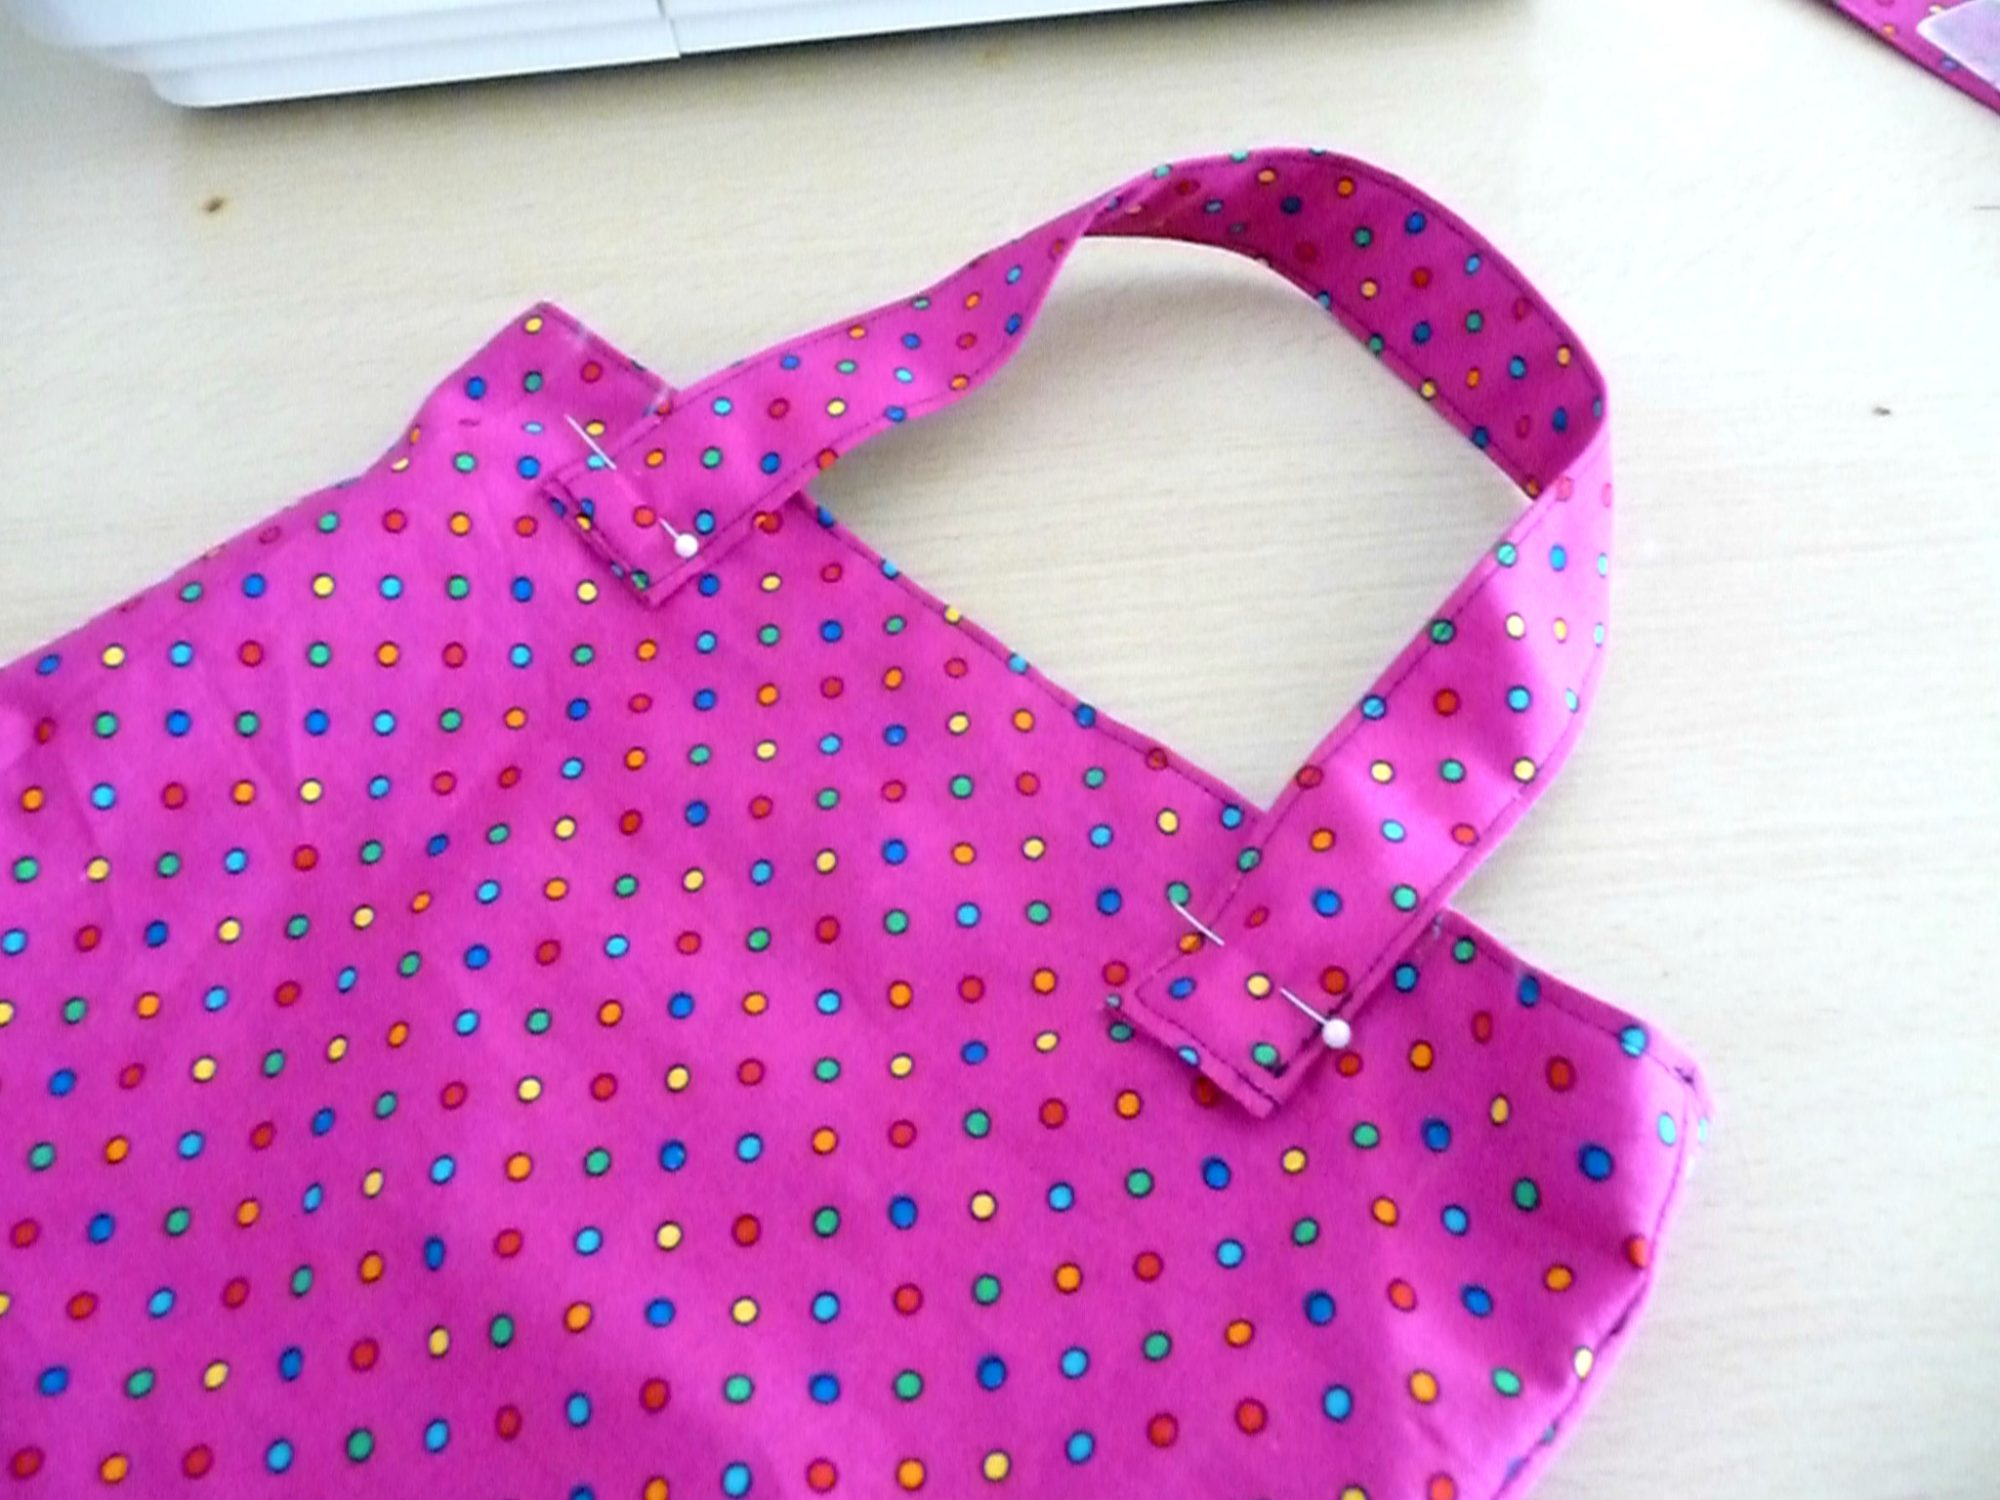 Attach straps to bag